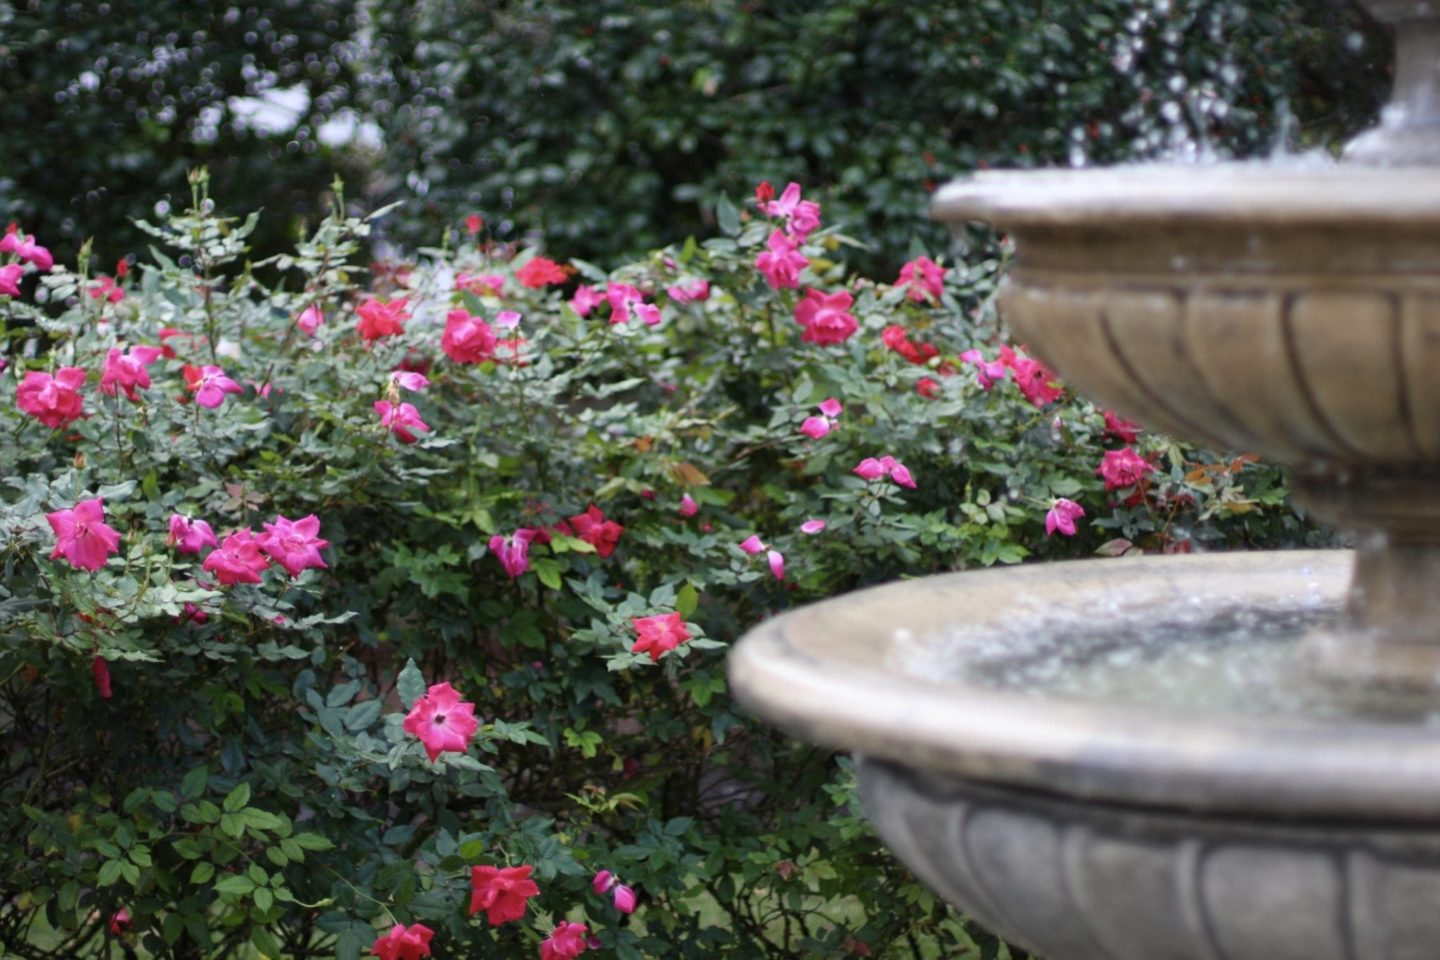 Knockout Roses around water fountain.